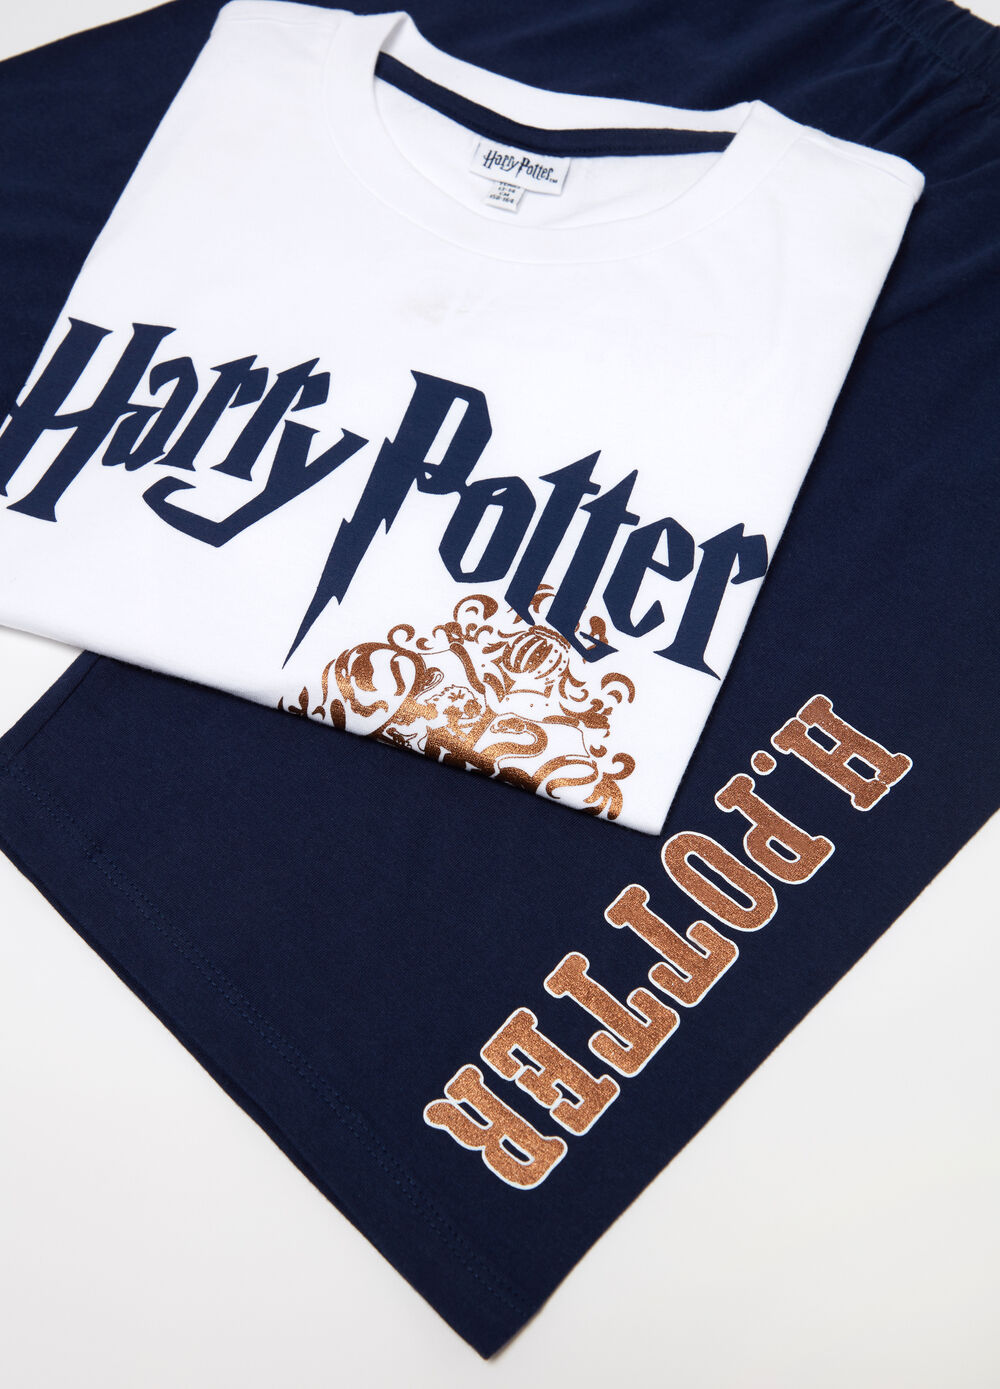 Pijama corto biocotton Harry Potter